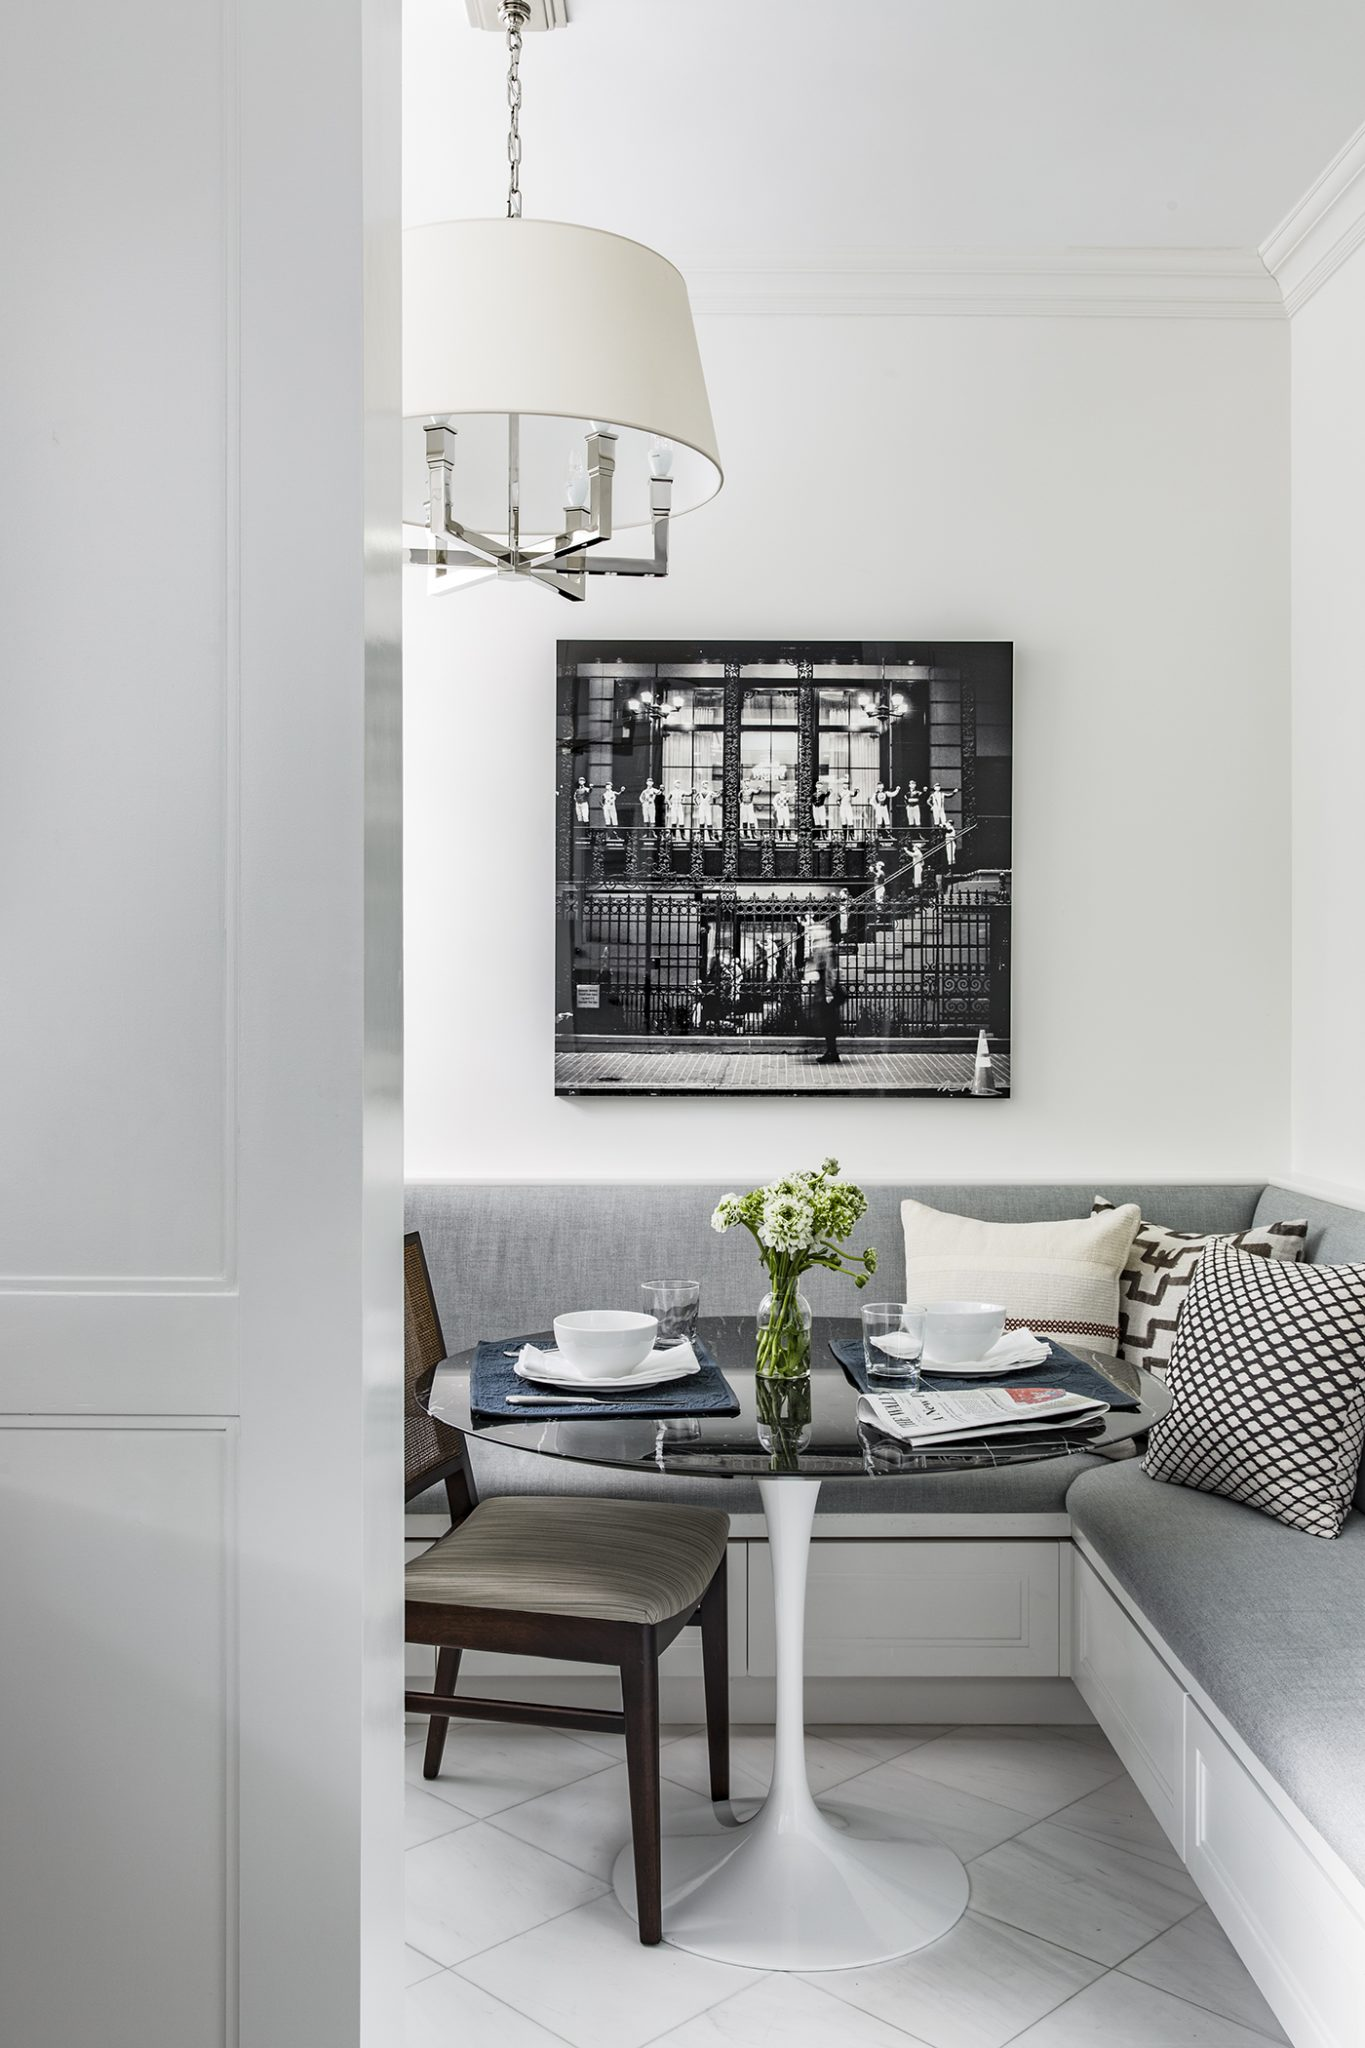 """Perfect Pre-War"" - Upper West Side apartment - breakfast nook by James Wagman Architect"